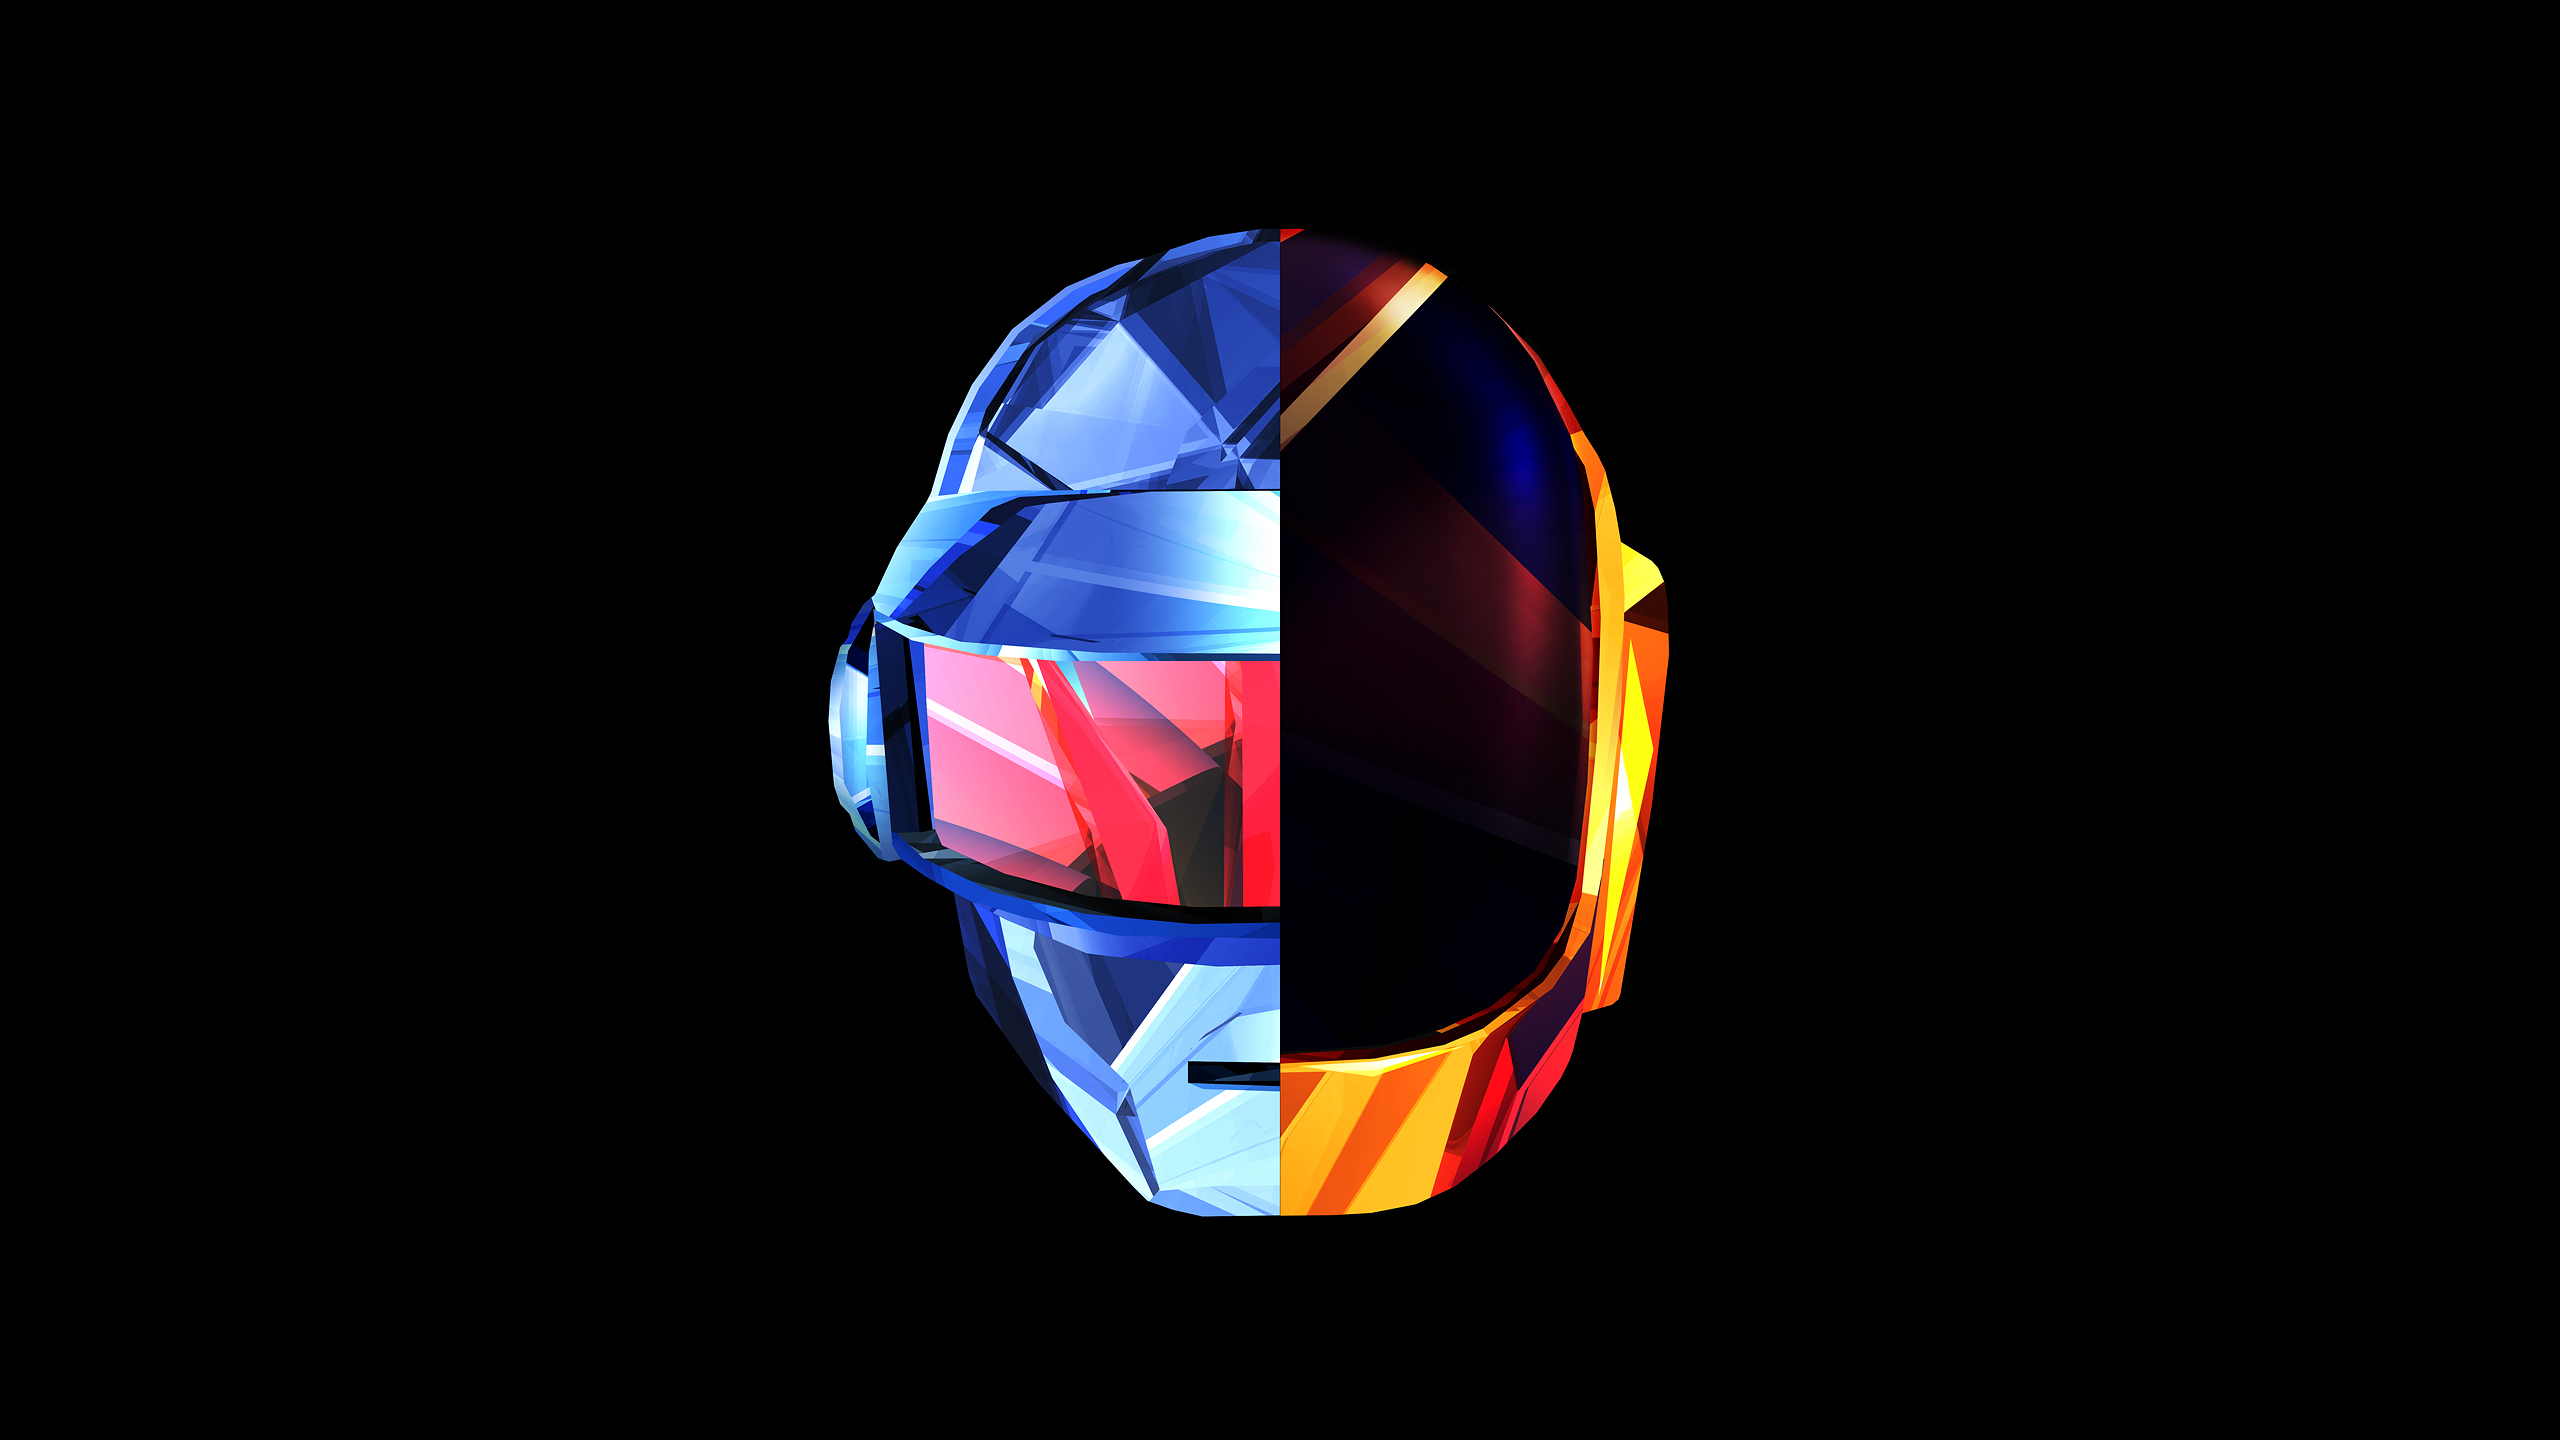 76+ Daft Punk Background on WallpaperSafari